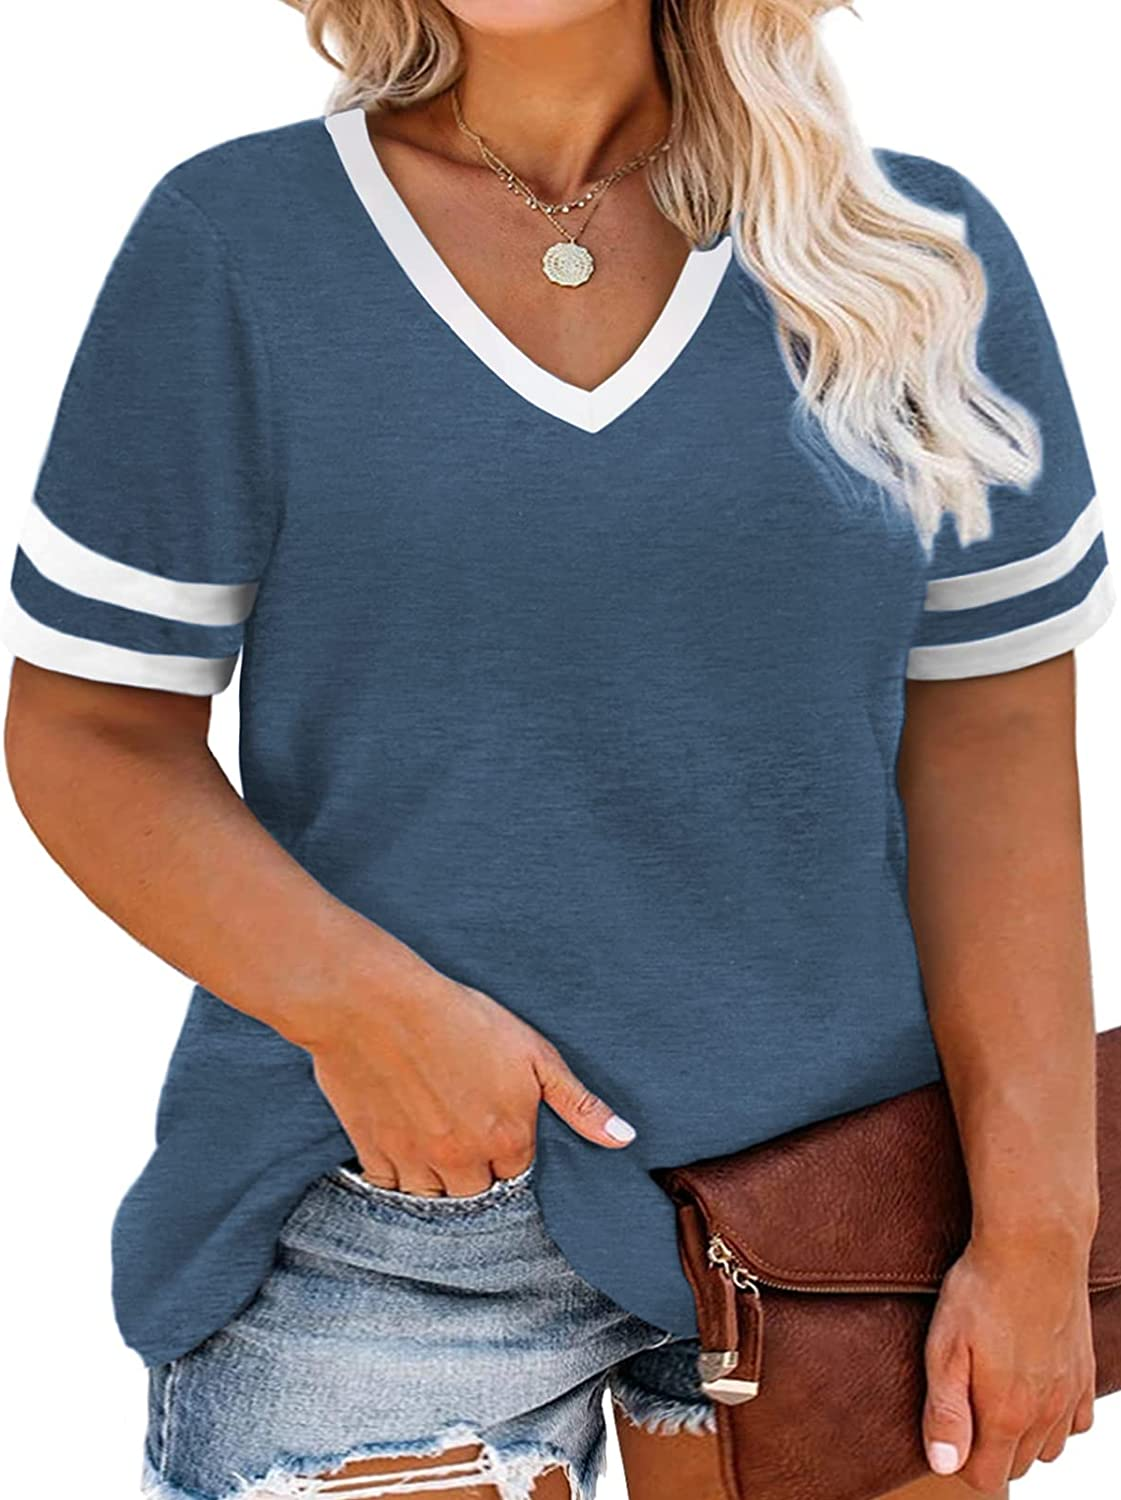 ROSRISS Womens Plus Size Tops V-Neck Loose Tunics Casual Color Block Tee Shirts